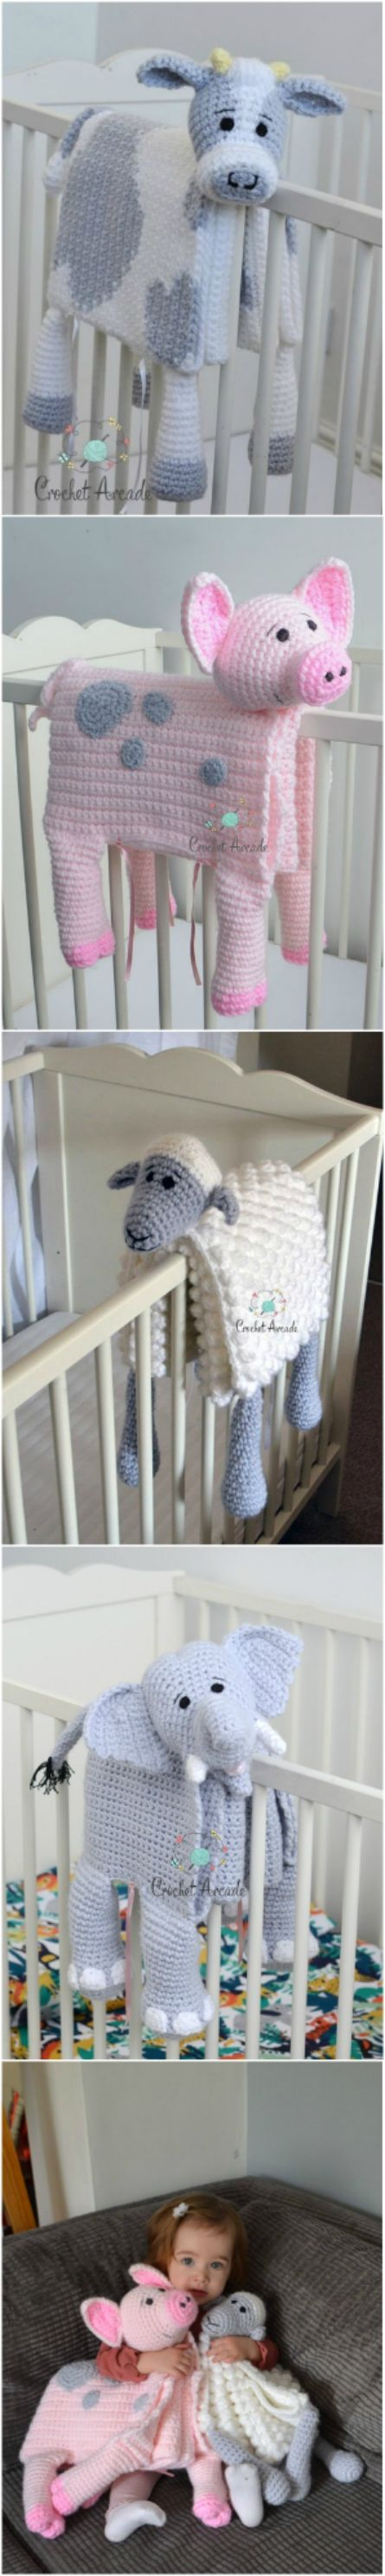 Crochet Animal Lovey Blanket Patterns Perfect For Baby